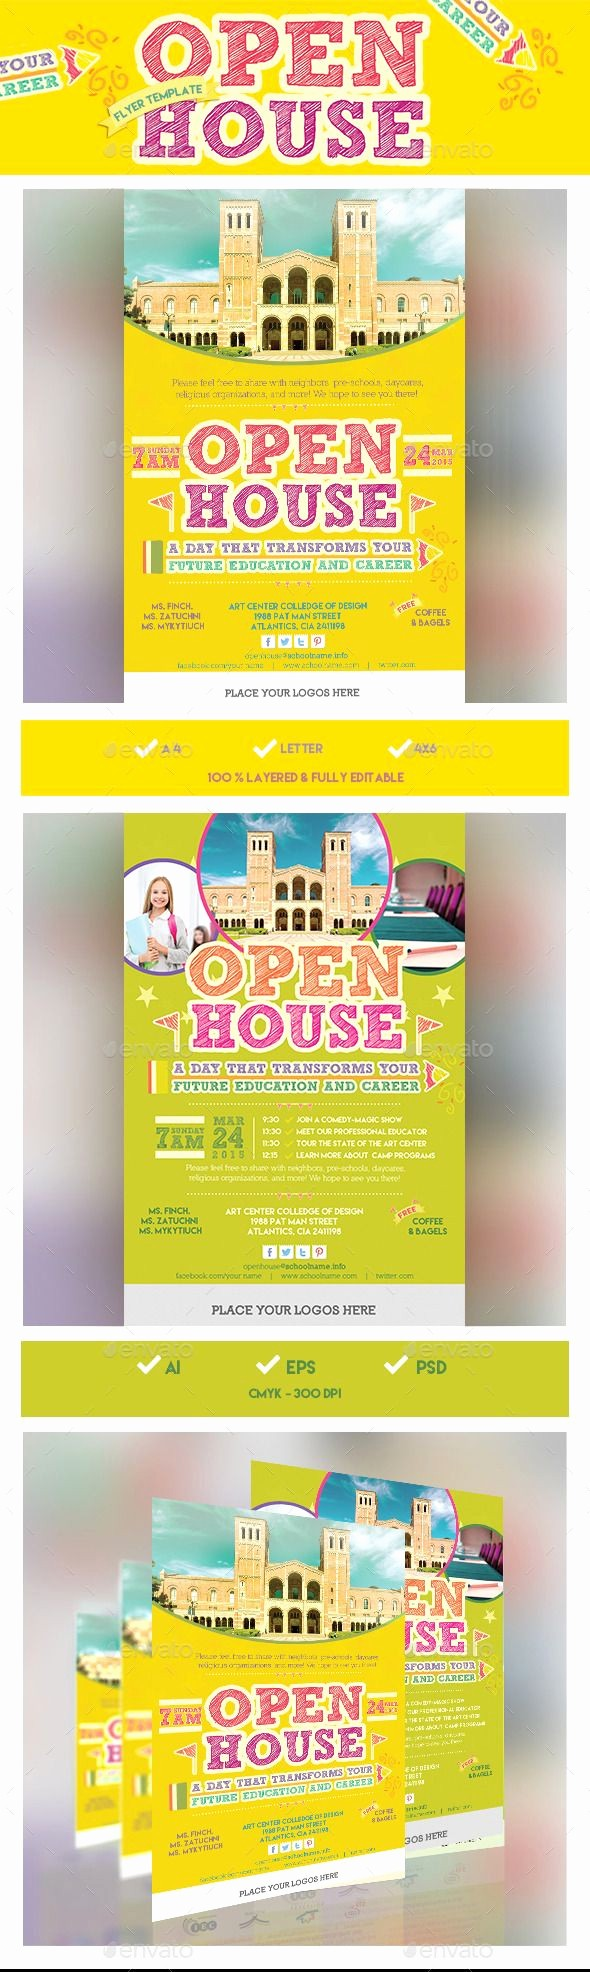 School Open House Invitations Templates Elegant 1000 Ideas About Open House Invitation On Pinterest